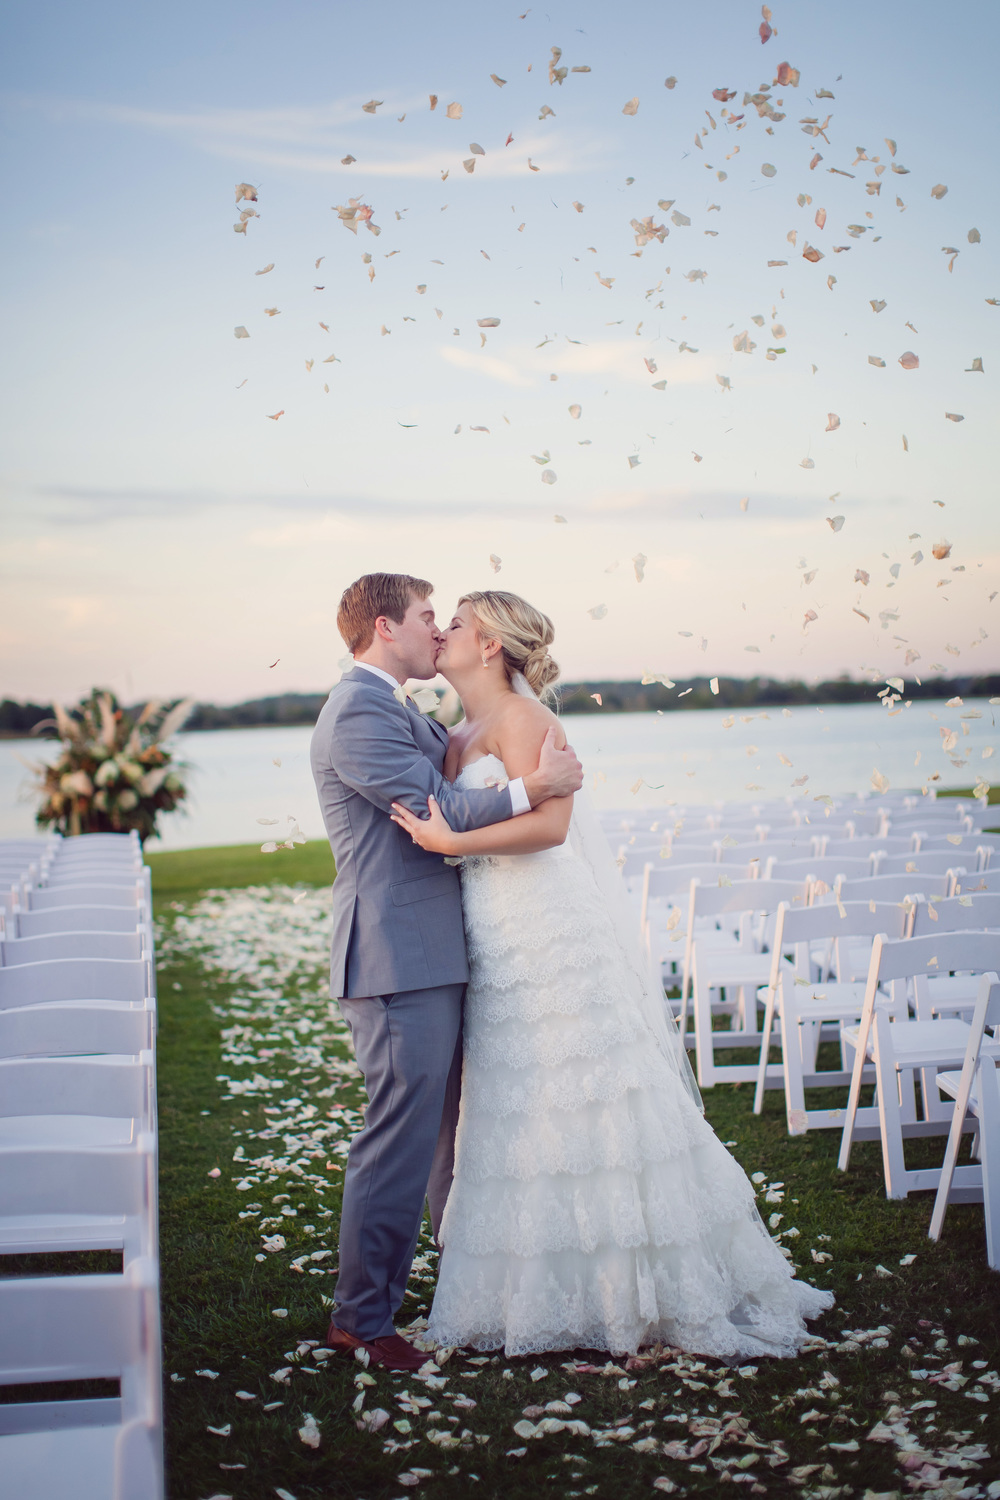 Hannah + Andy's Island House wedding by Lowcountry vendor Rebecca Keeling Photography